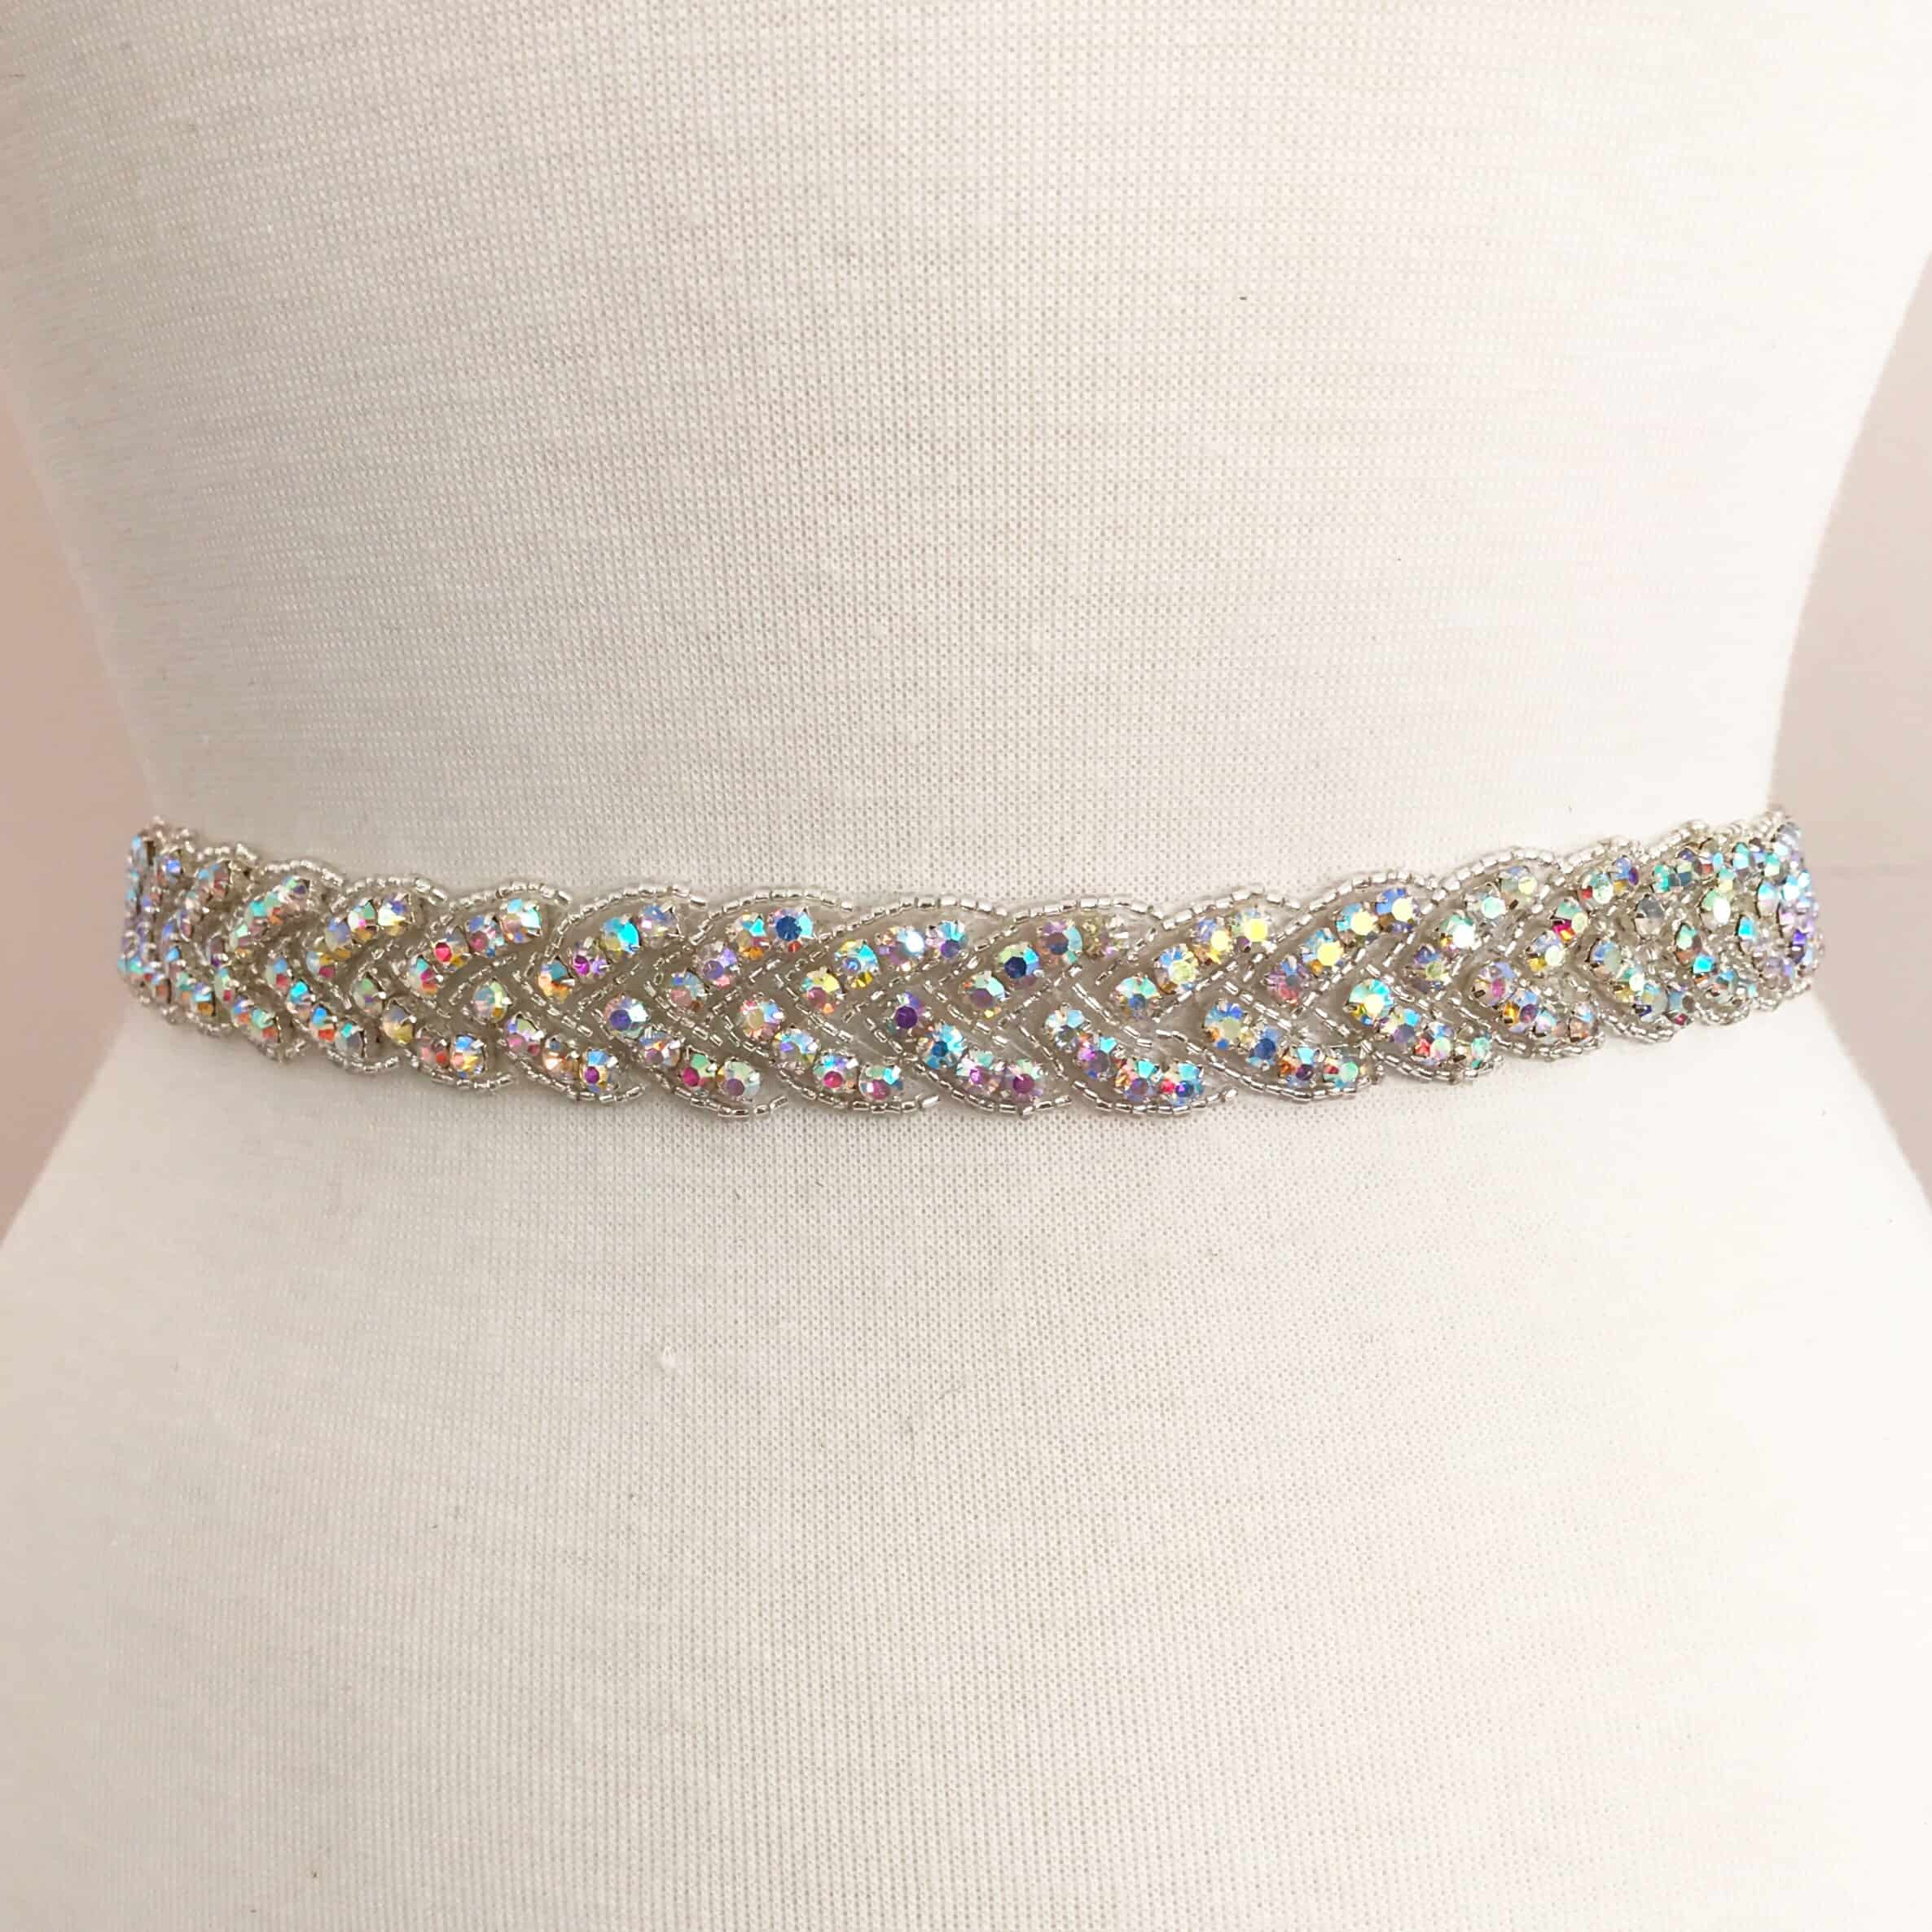 *SALE* AB Silver Braid Rhinestone Beaded Trim